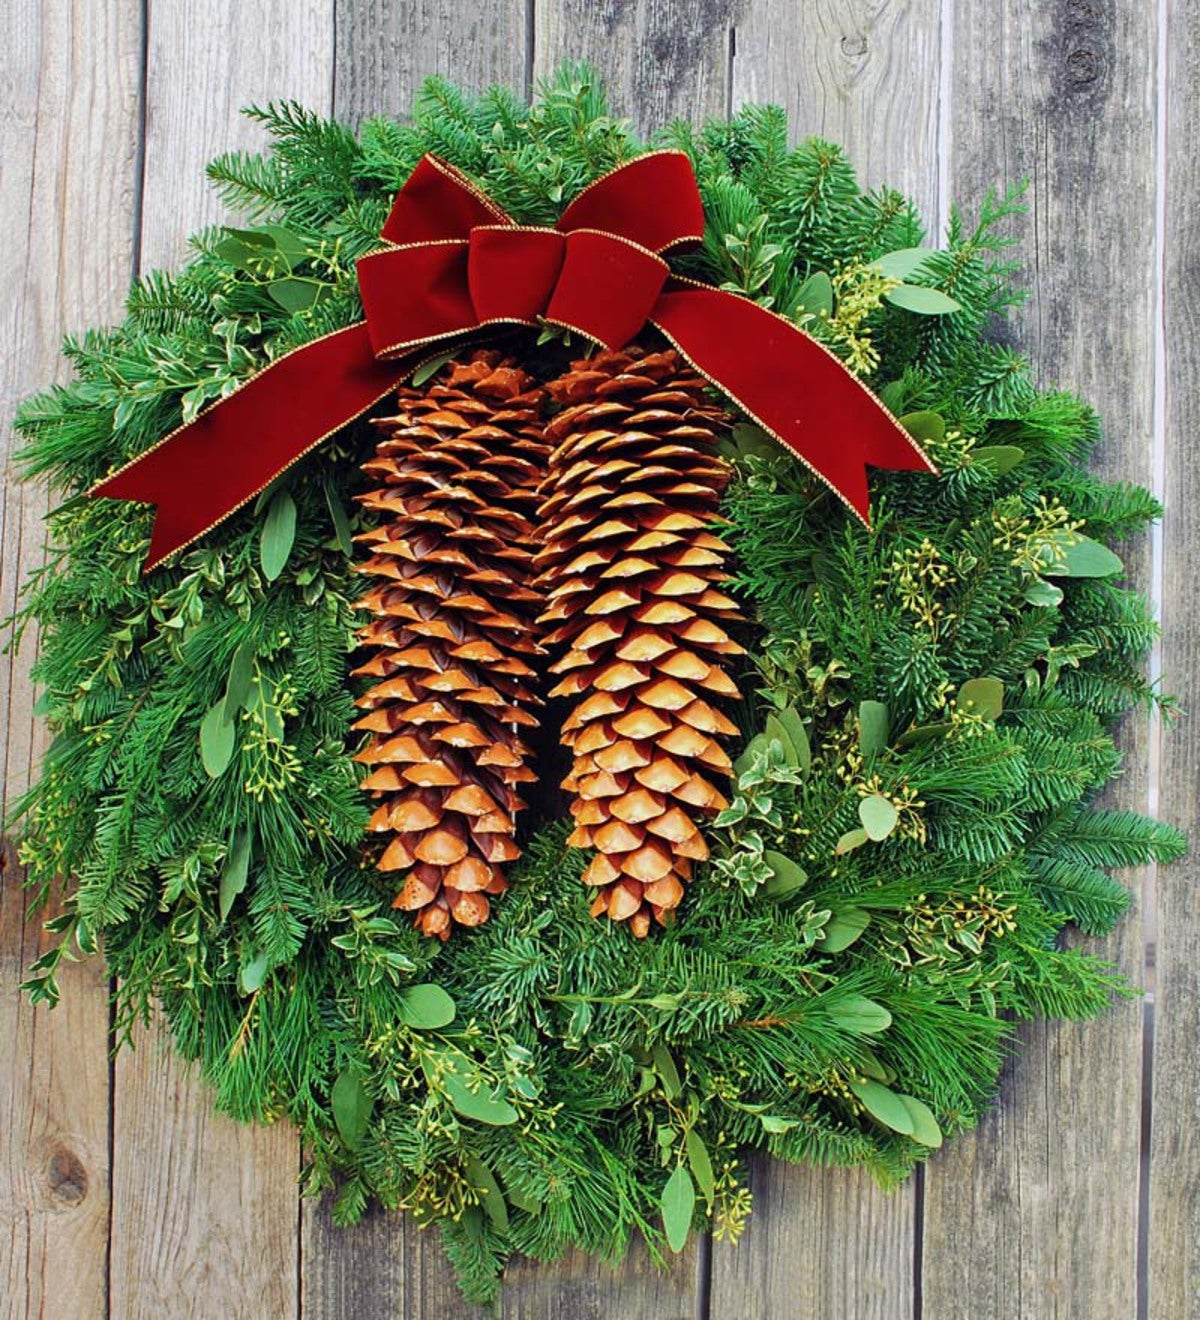 Handmade Fresh Tahoe Pine Holiday Wreath - 27&quote;